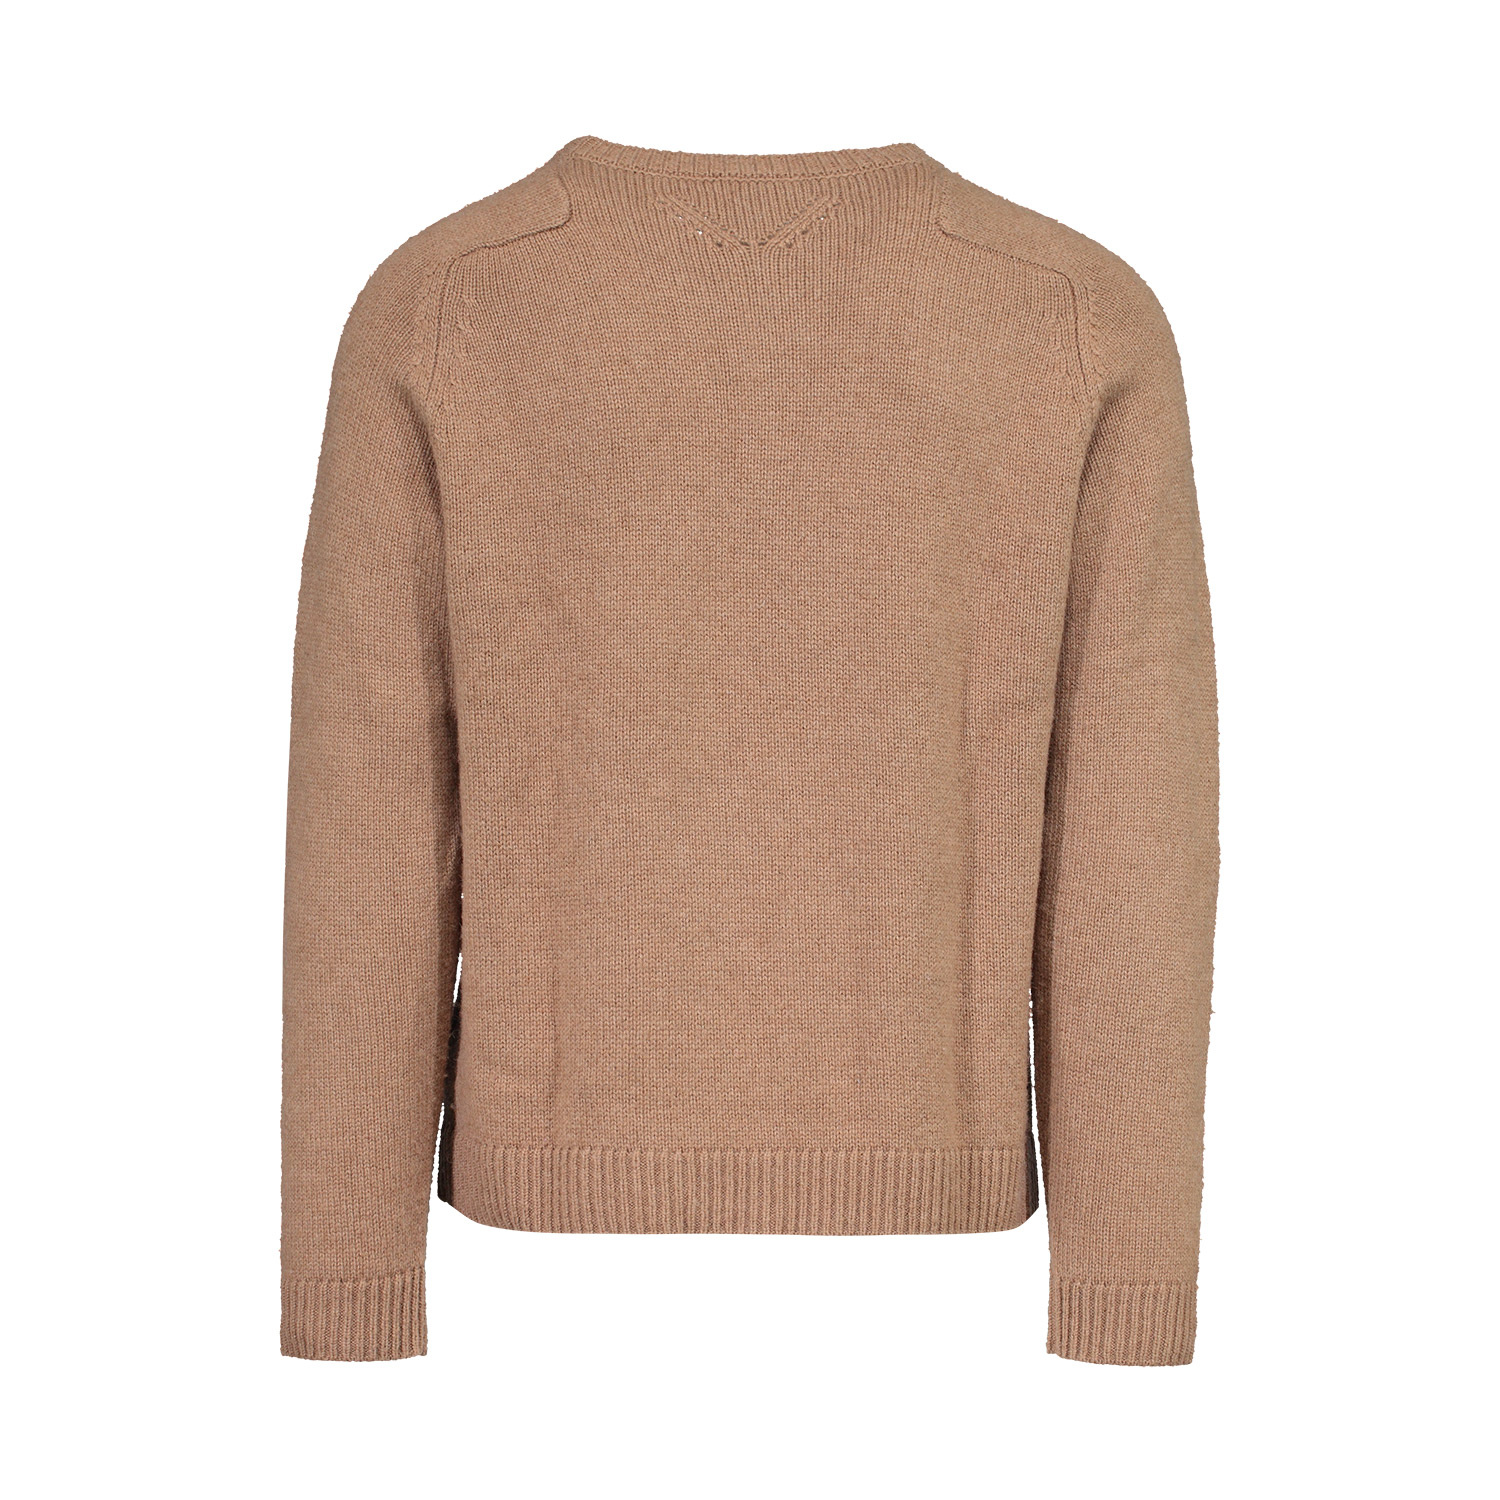 Valentino Valentino Tan Camel Hair Round Neck Sweater